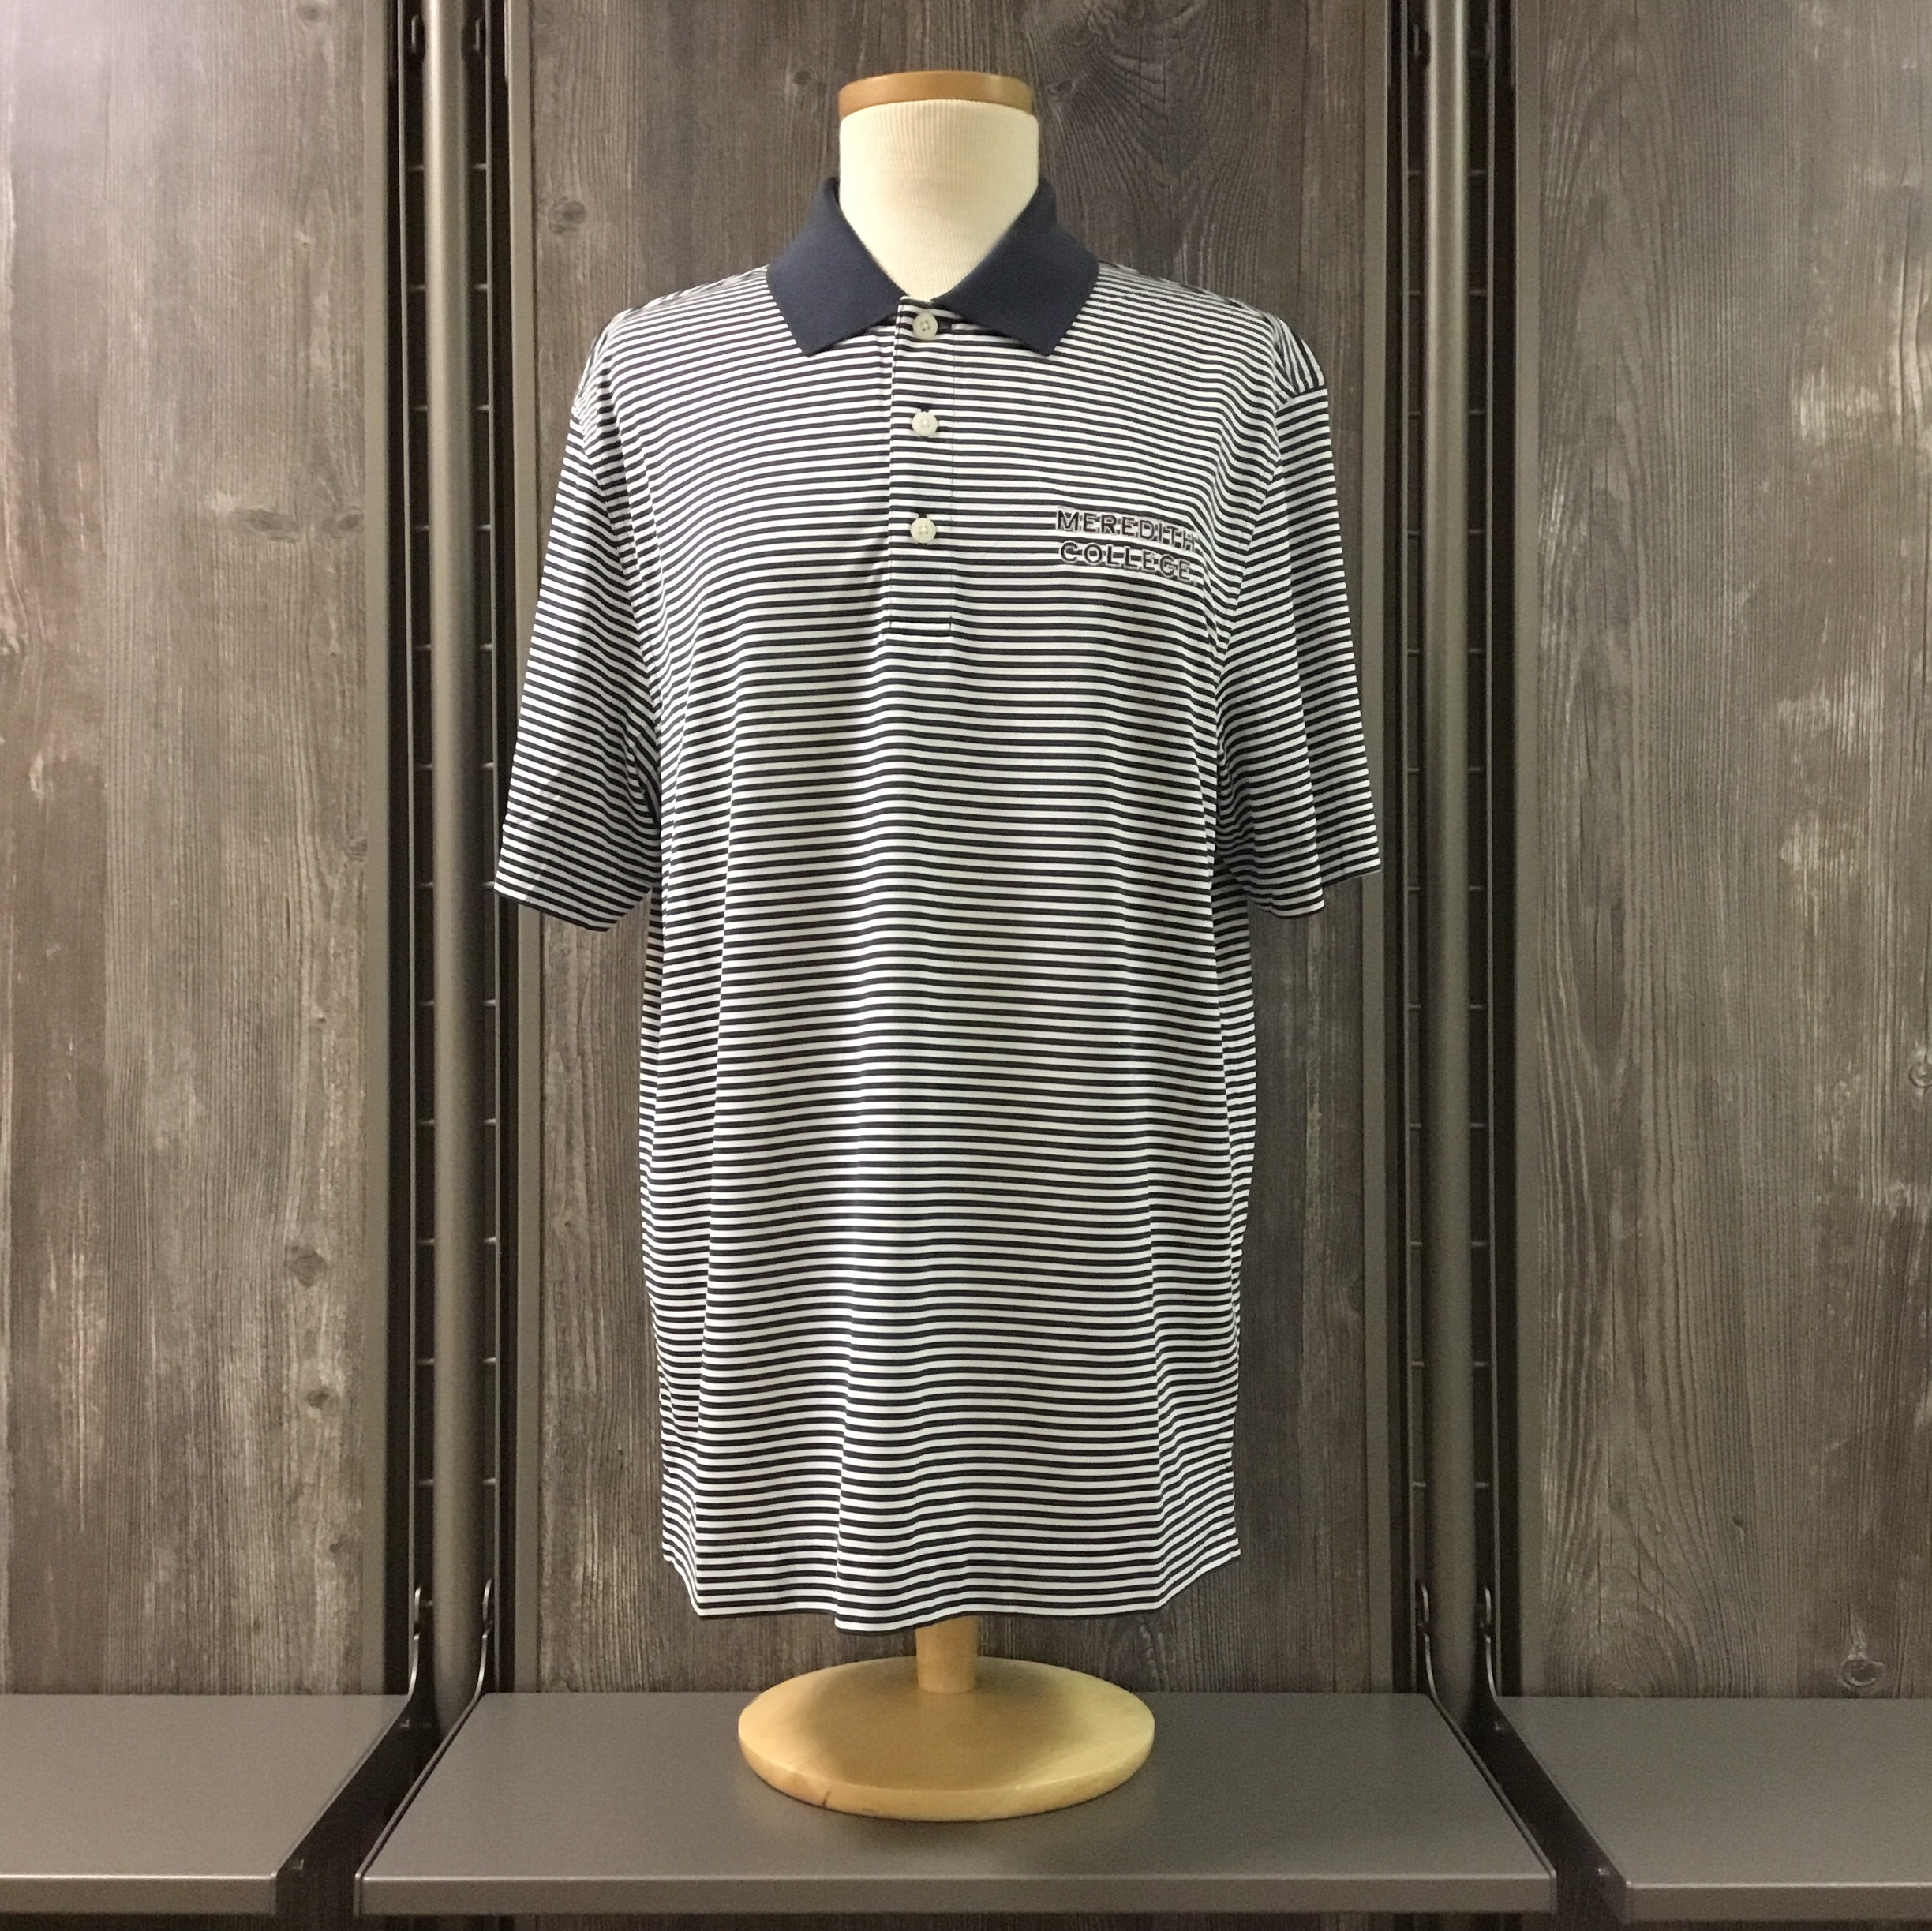 Image for the Men's Polo Trevor White/Gray Stripe Cutter & Buck product